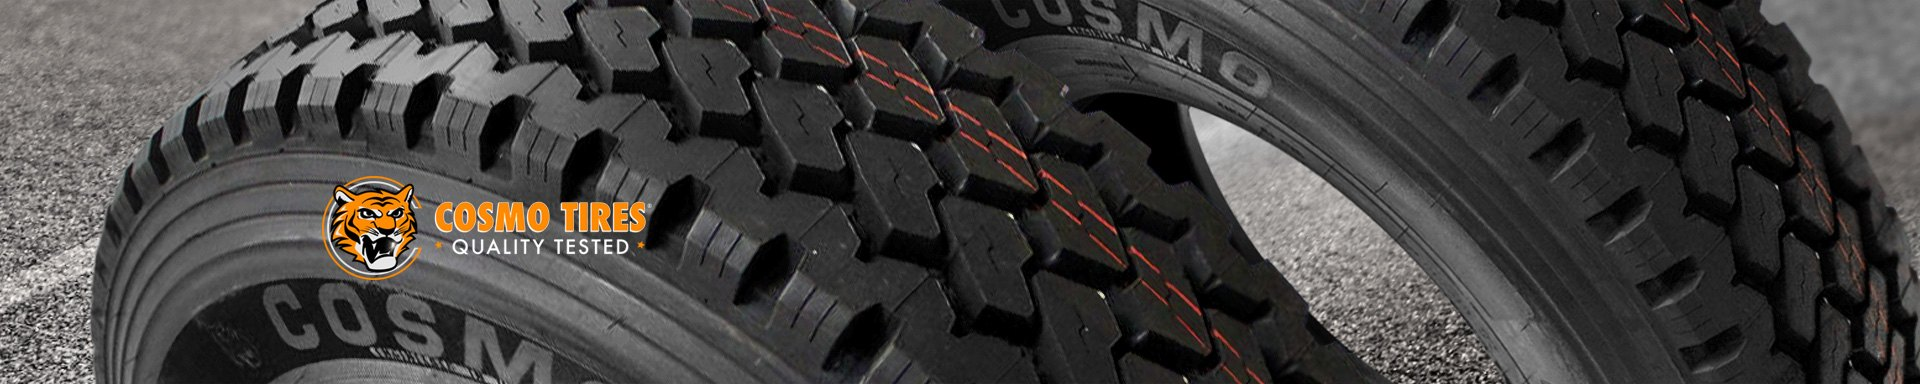 Universal COSMO TIRES